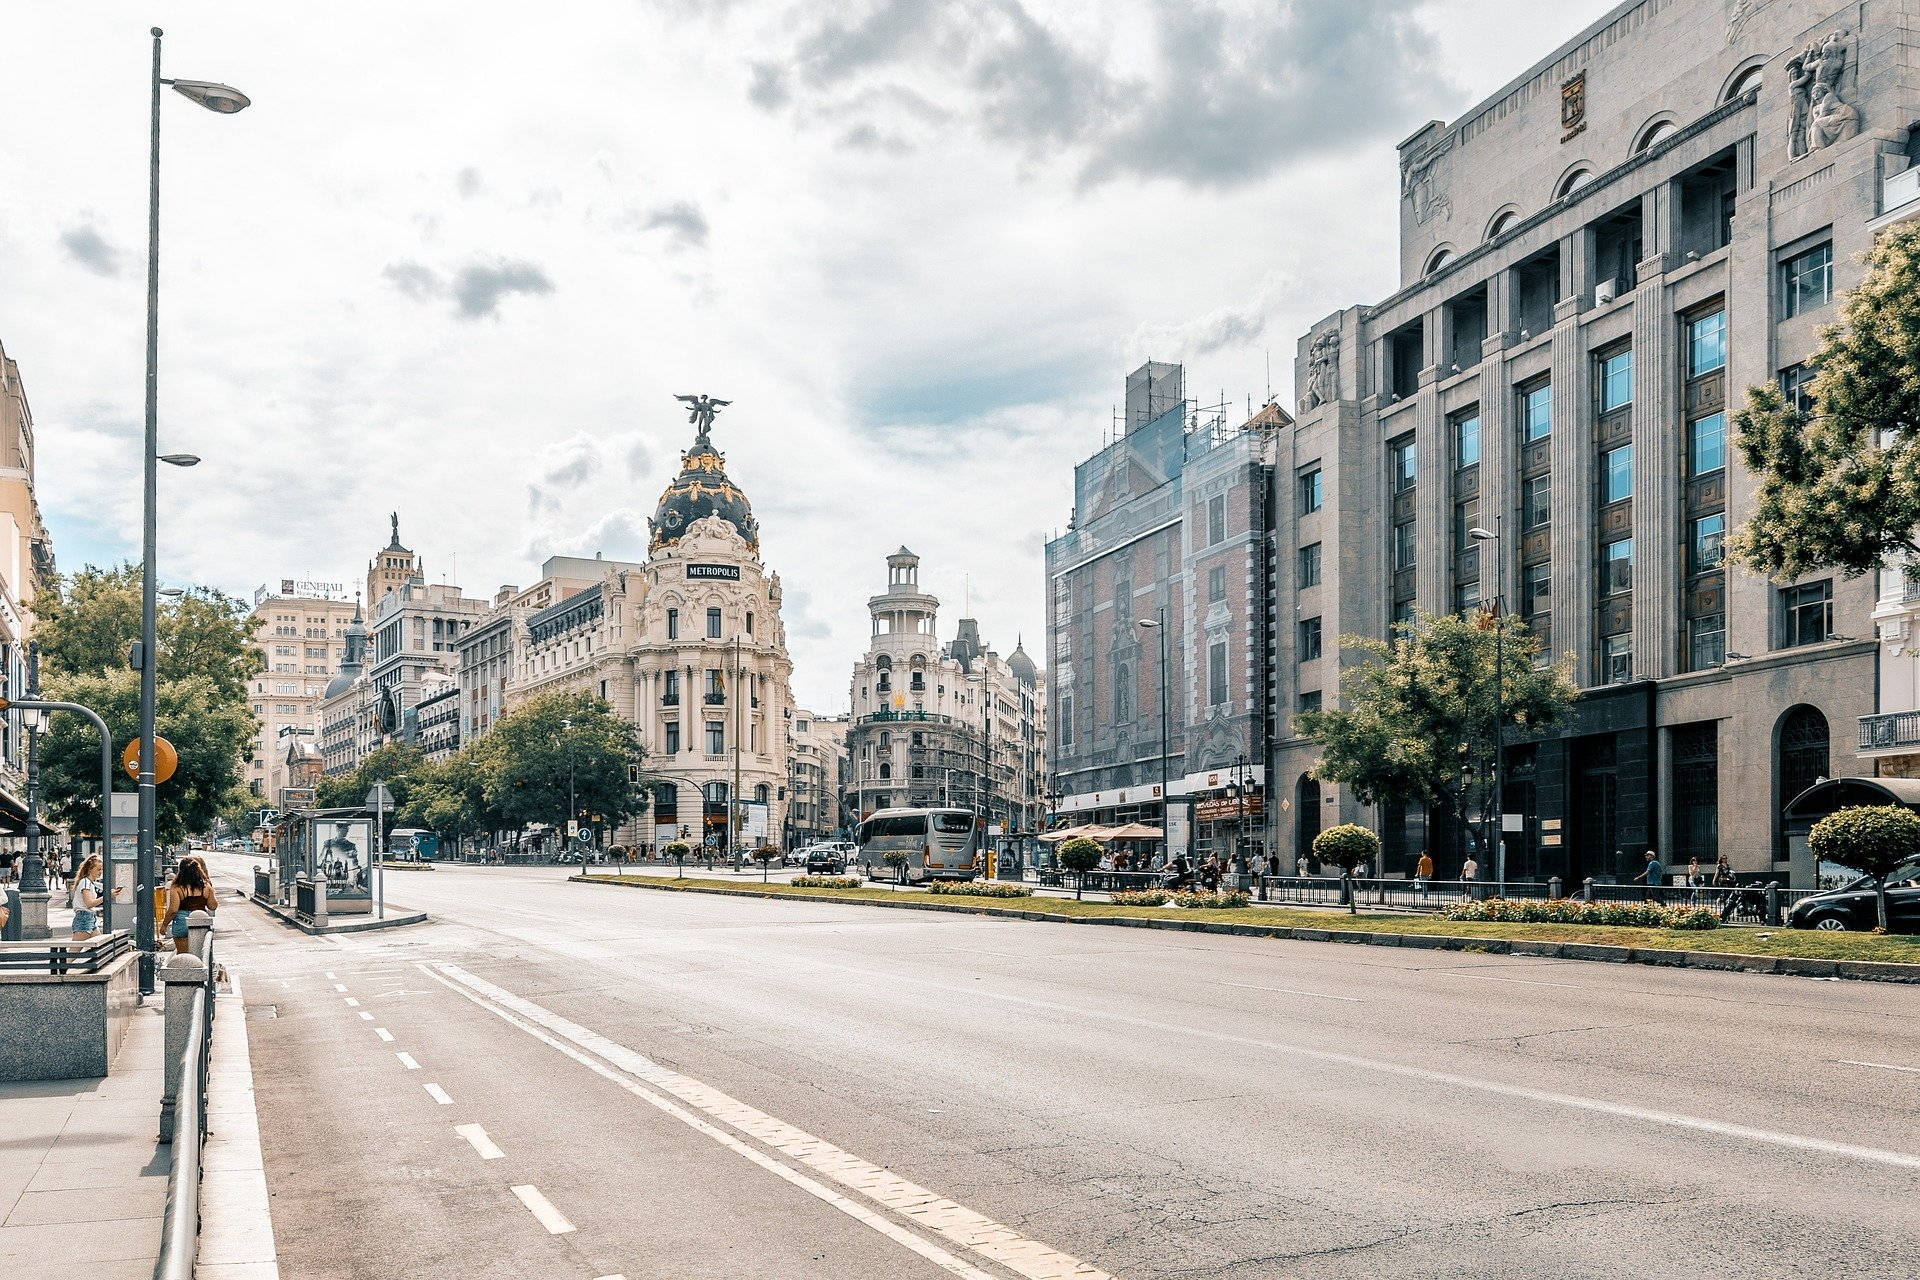 Roadtrip to Portugal and Spain